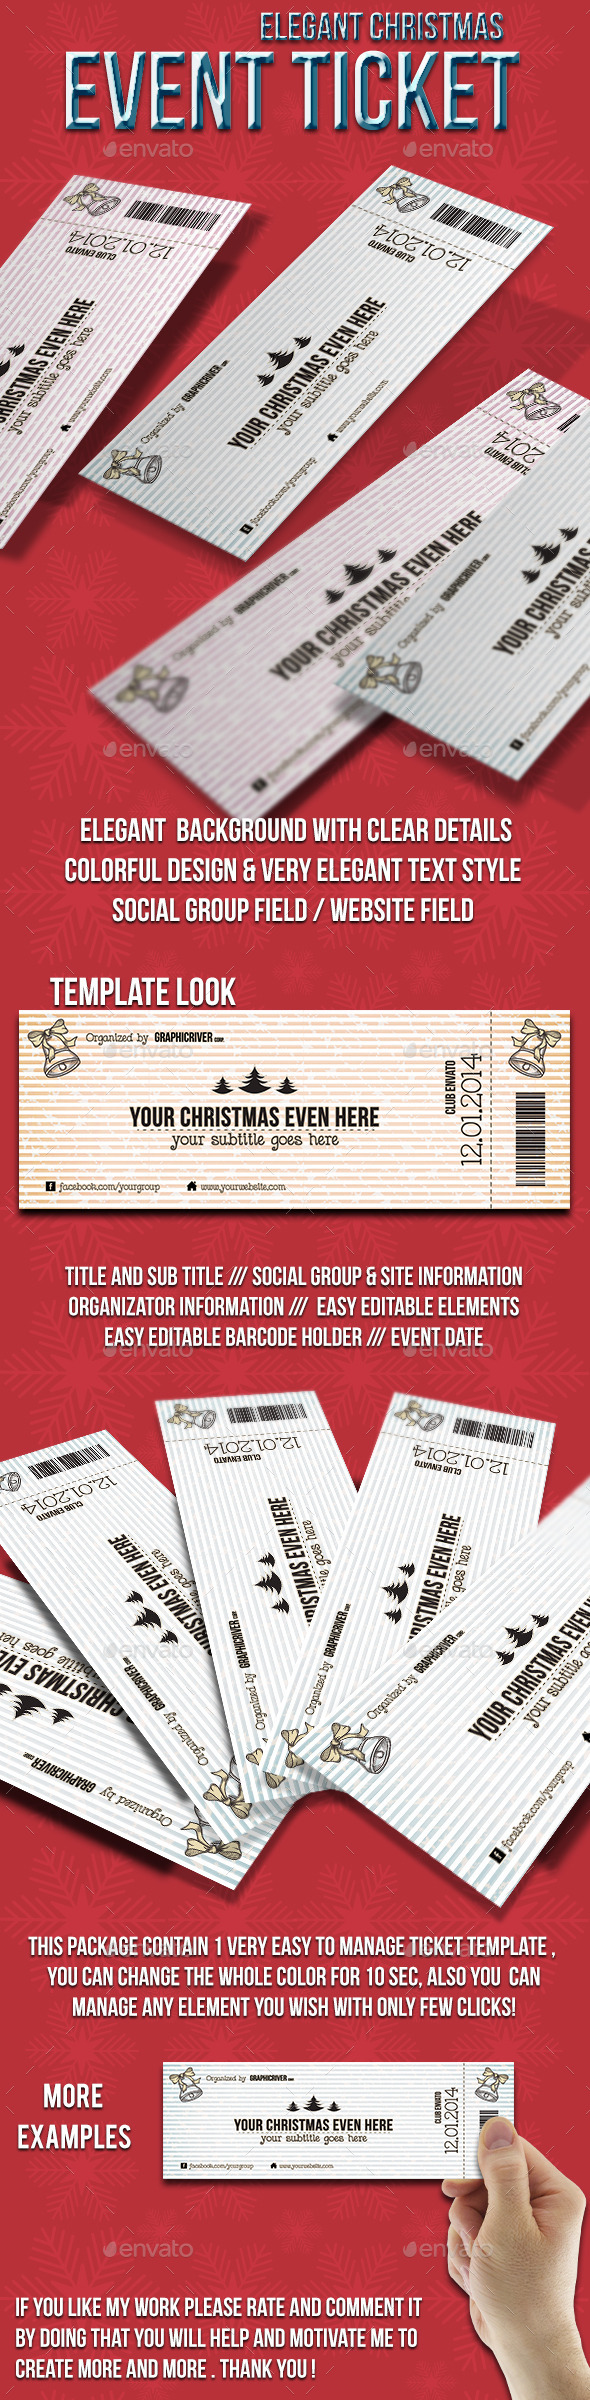 elegant christmas event ticket graphicriver. Black Bedroom Furniture Sets. Home Design Ideas